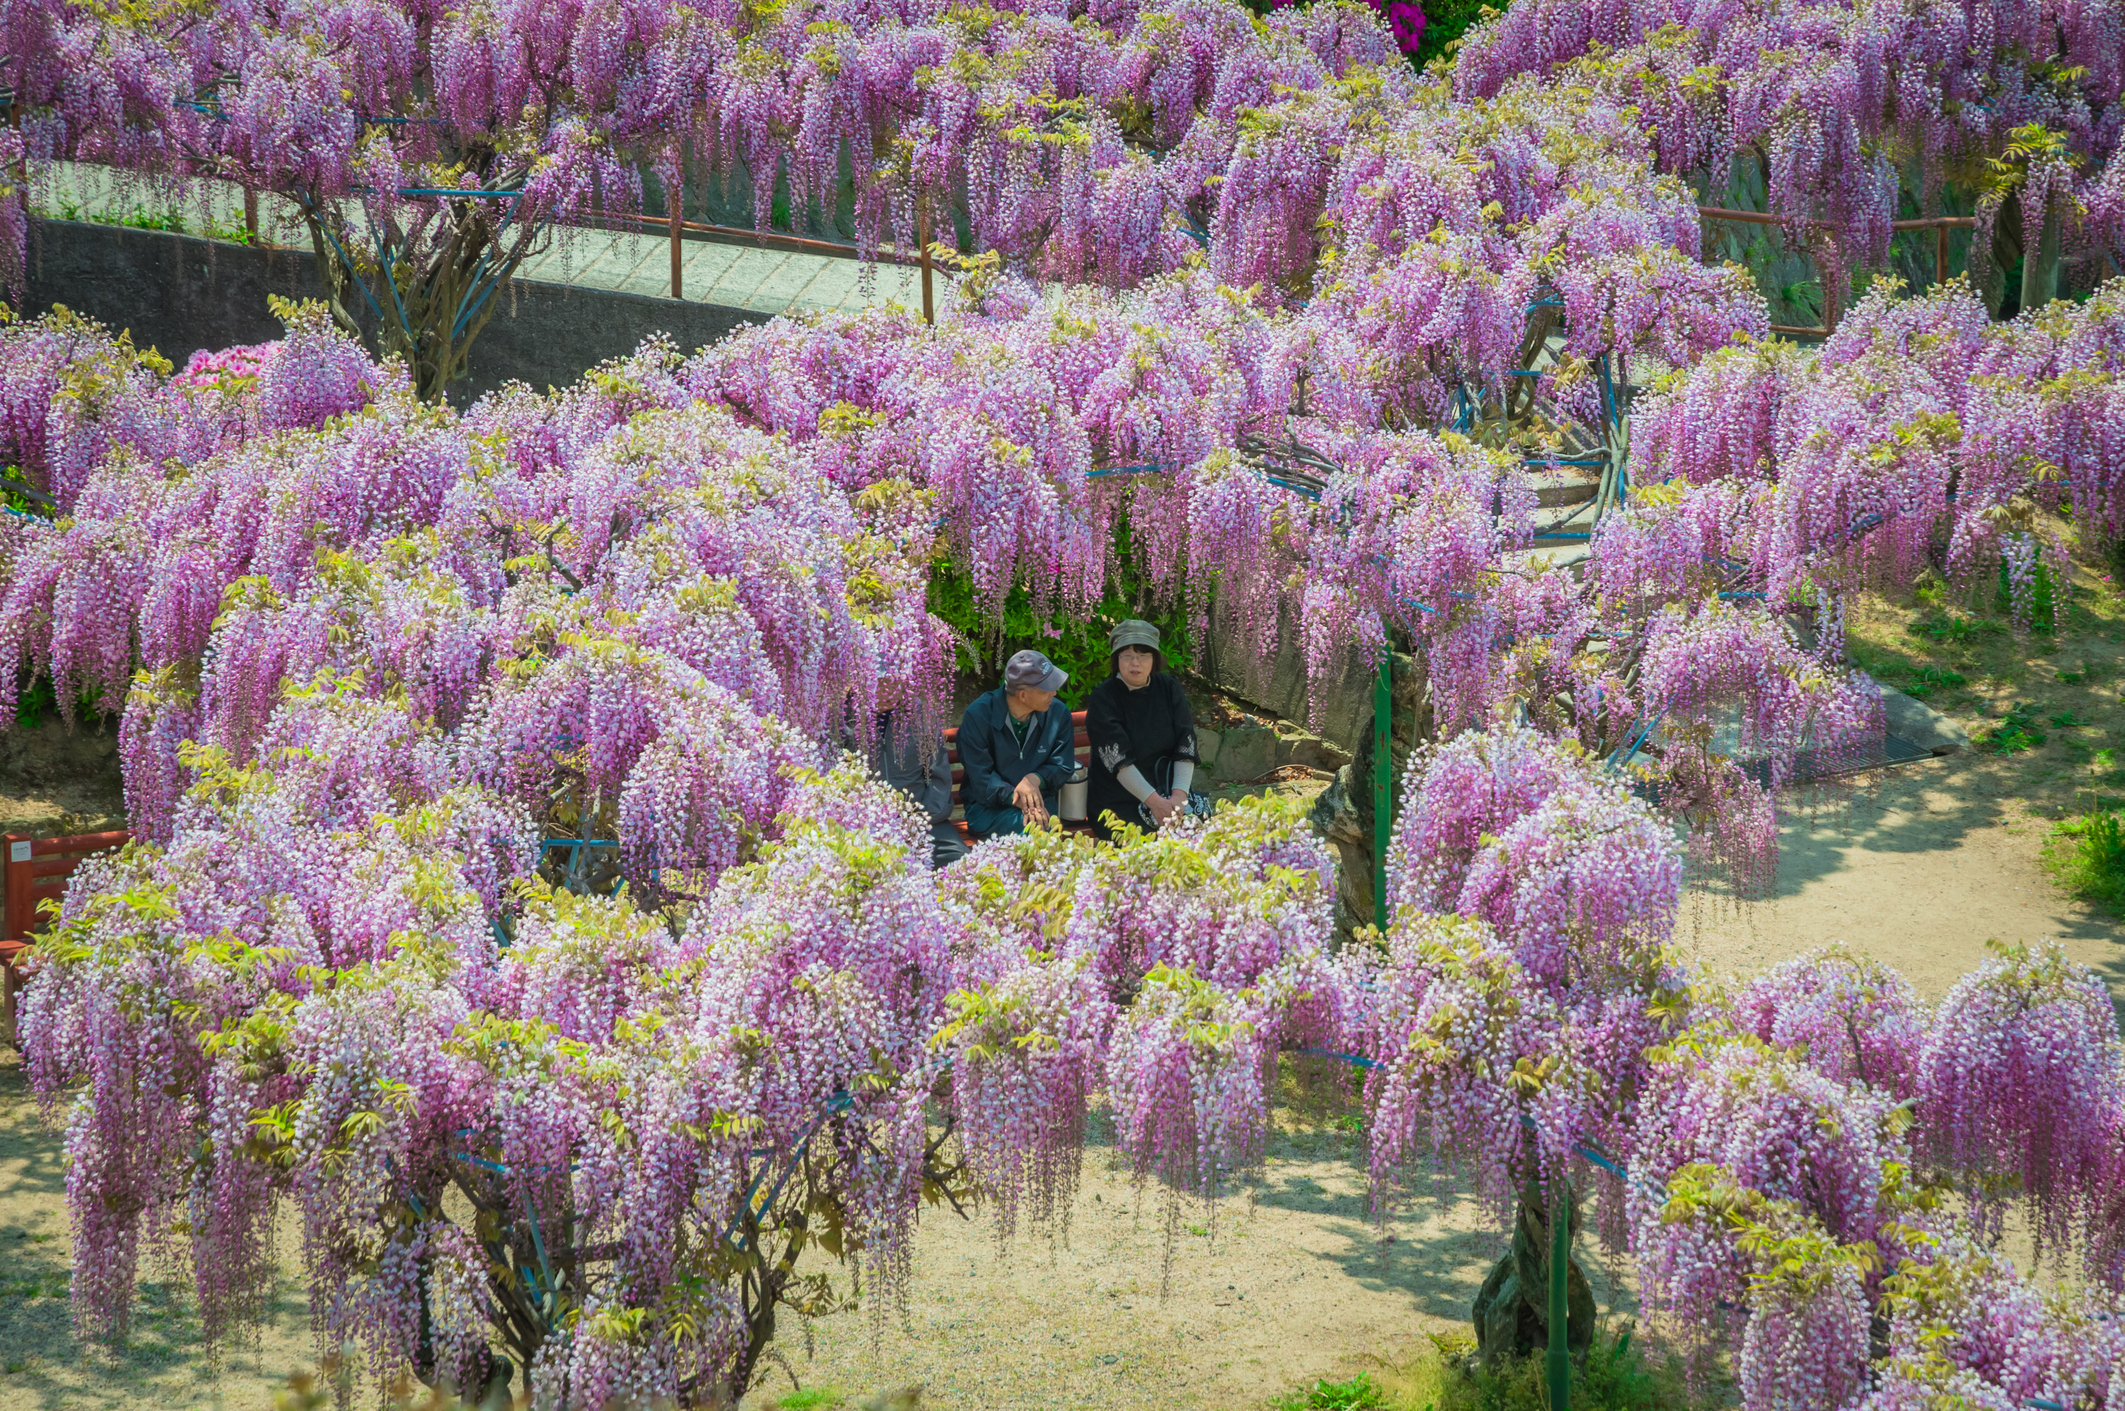 A park with wisteria in bloom